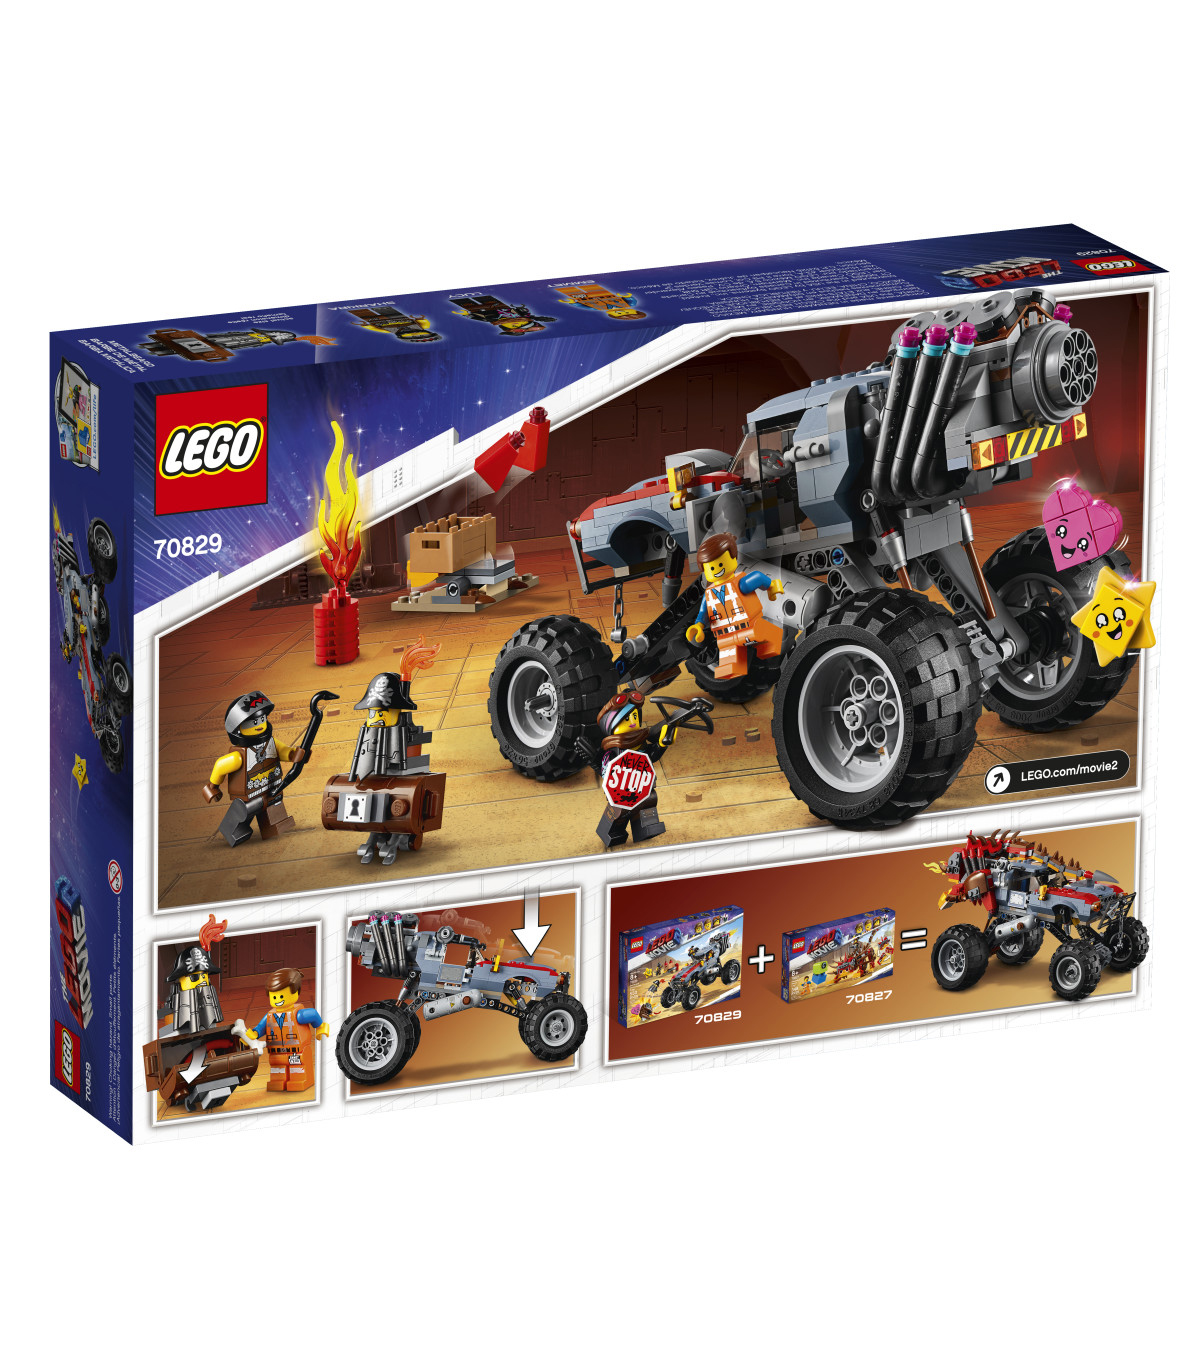 LEGO Movie Emmet and Lucy\u0027s Escape Buggy! 70829